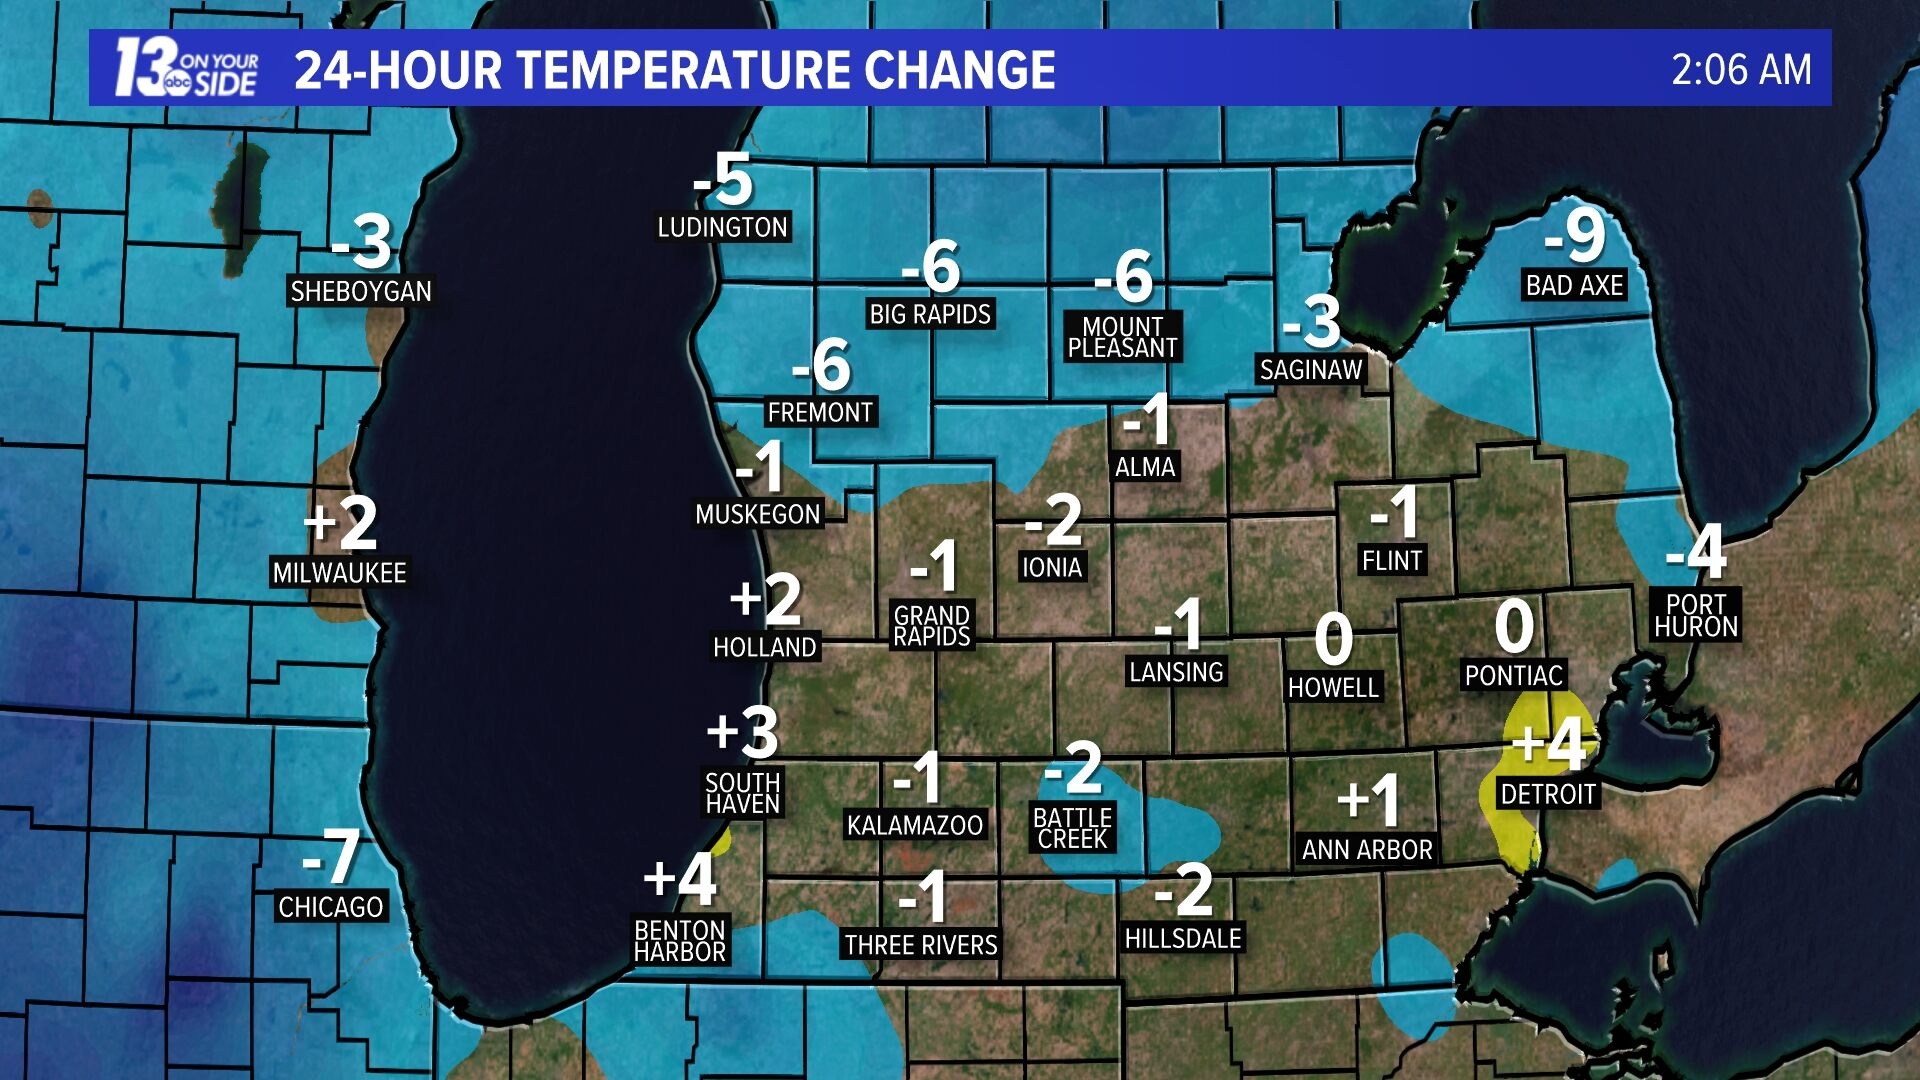 24 Hour Temperature Change